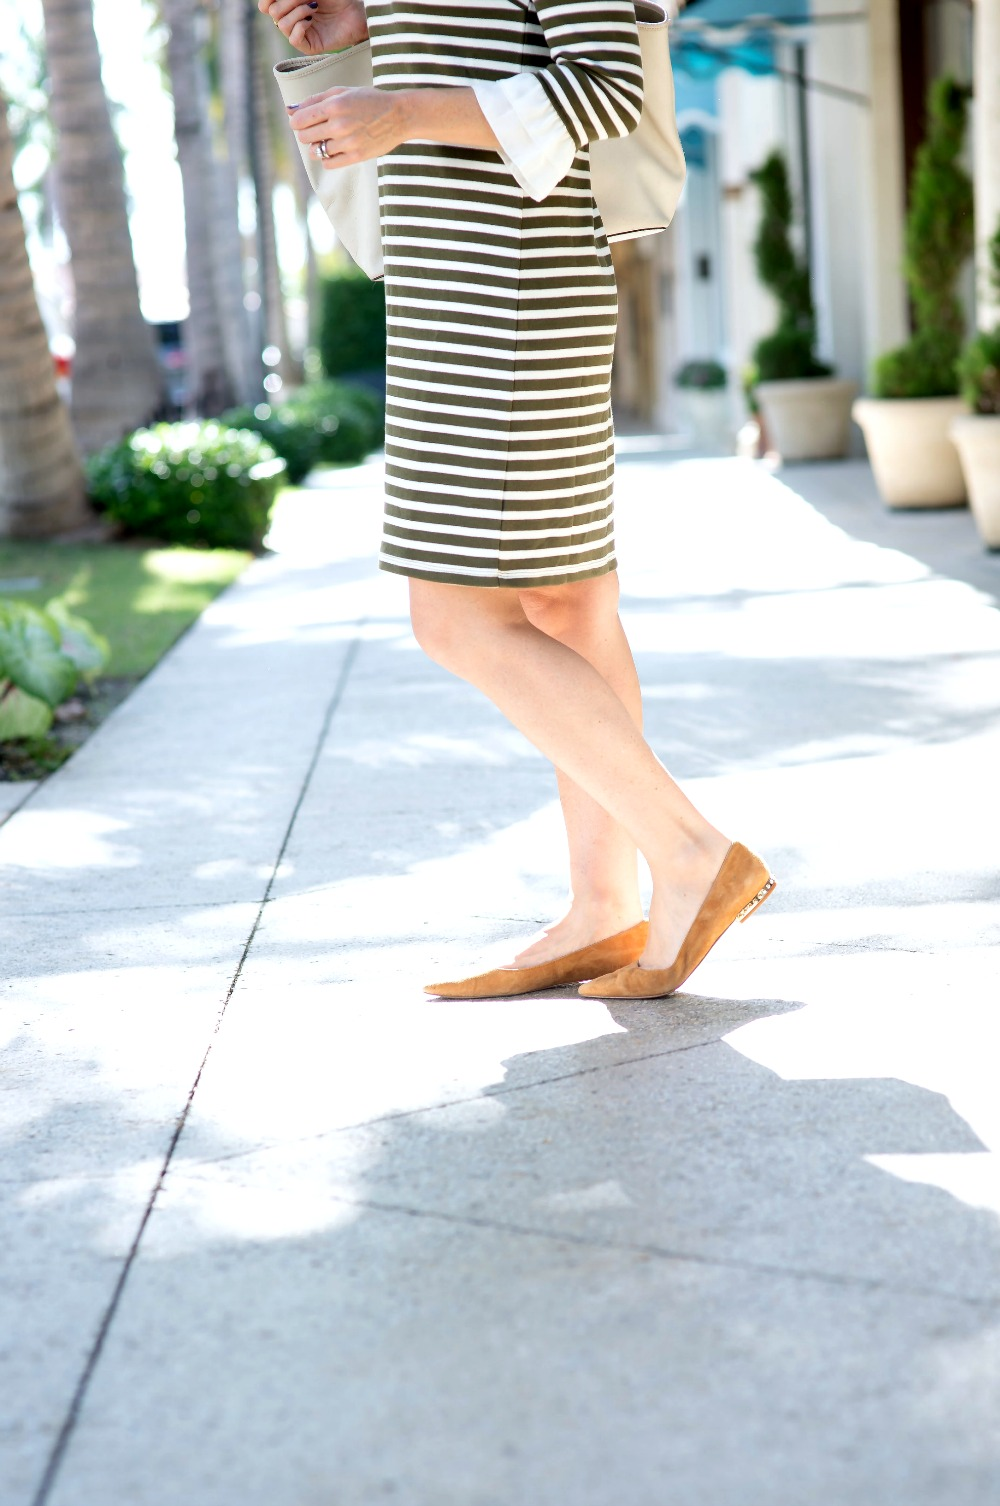 Easy fall style // the modern savvy, a florida-based life & style blog